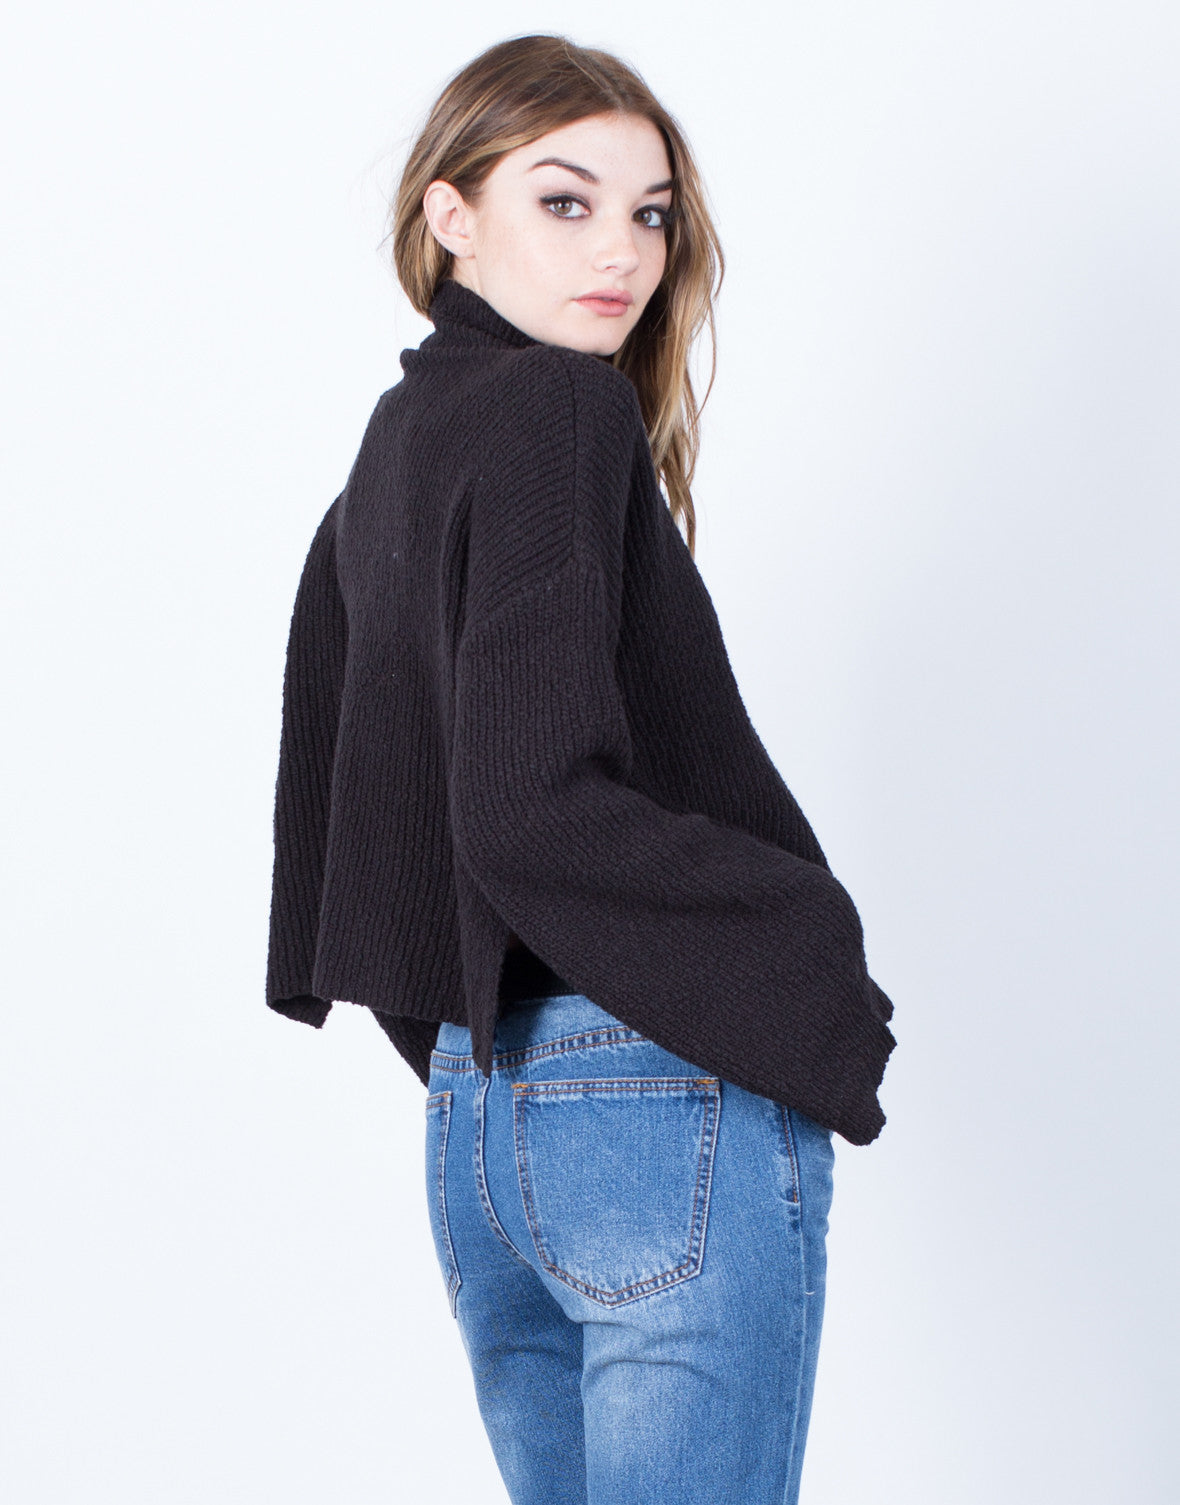 Back View of Bell Sleeve Turtleneck Sweater